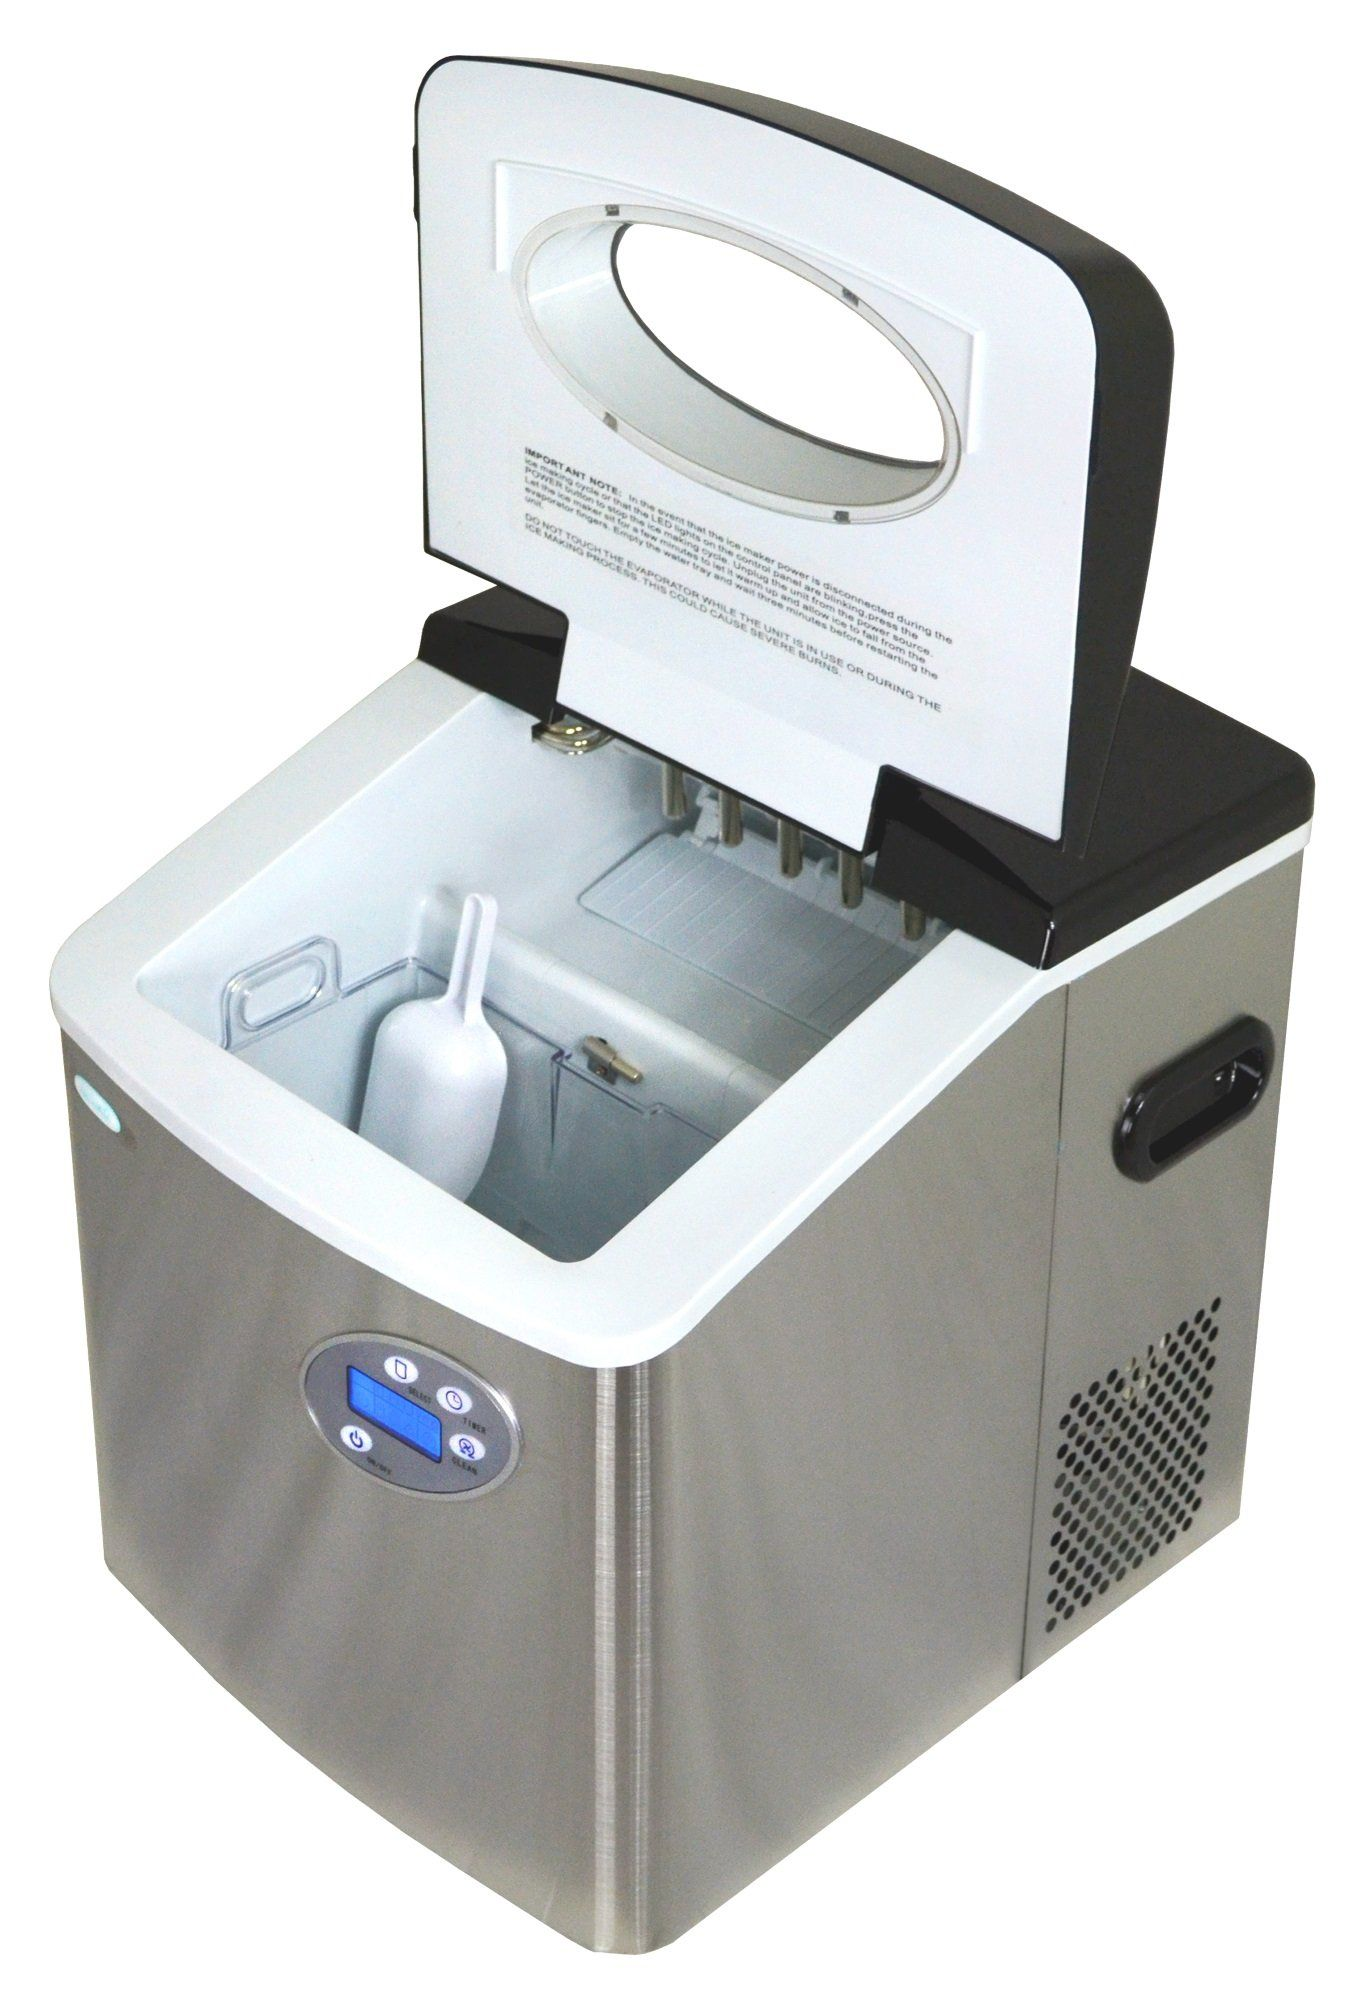 Newair Ai215ss Portable Countertop Ice Maker 50 Lbs Stainless